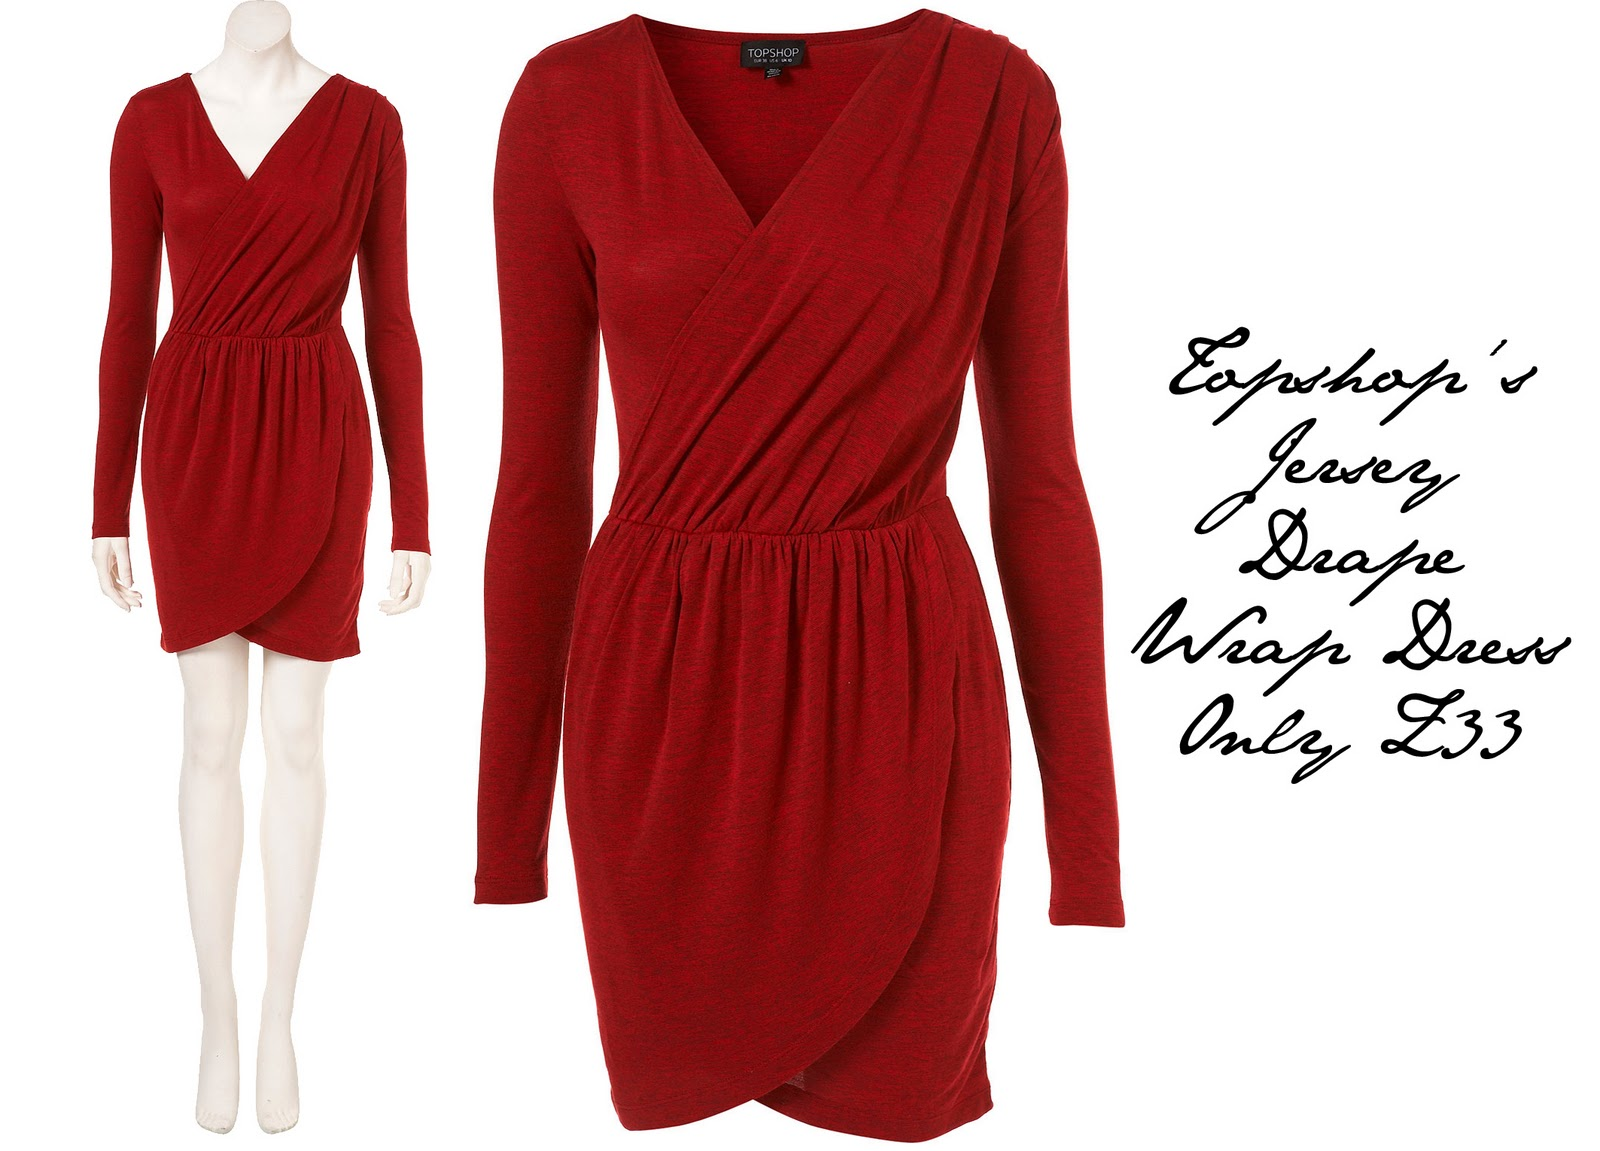 Wrap dress uk images frompo 1